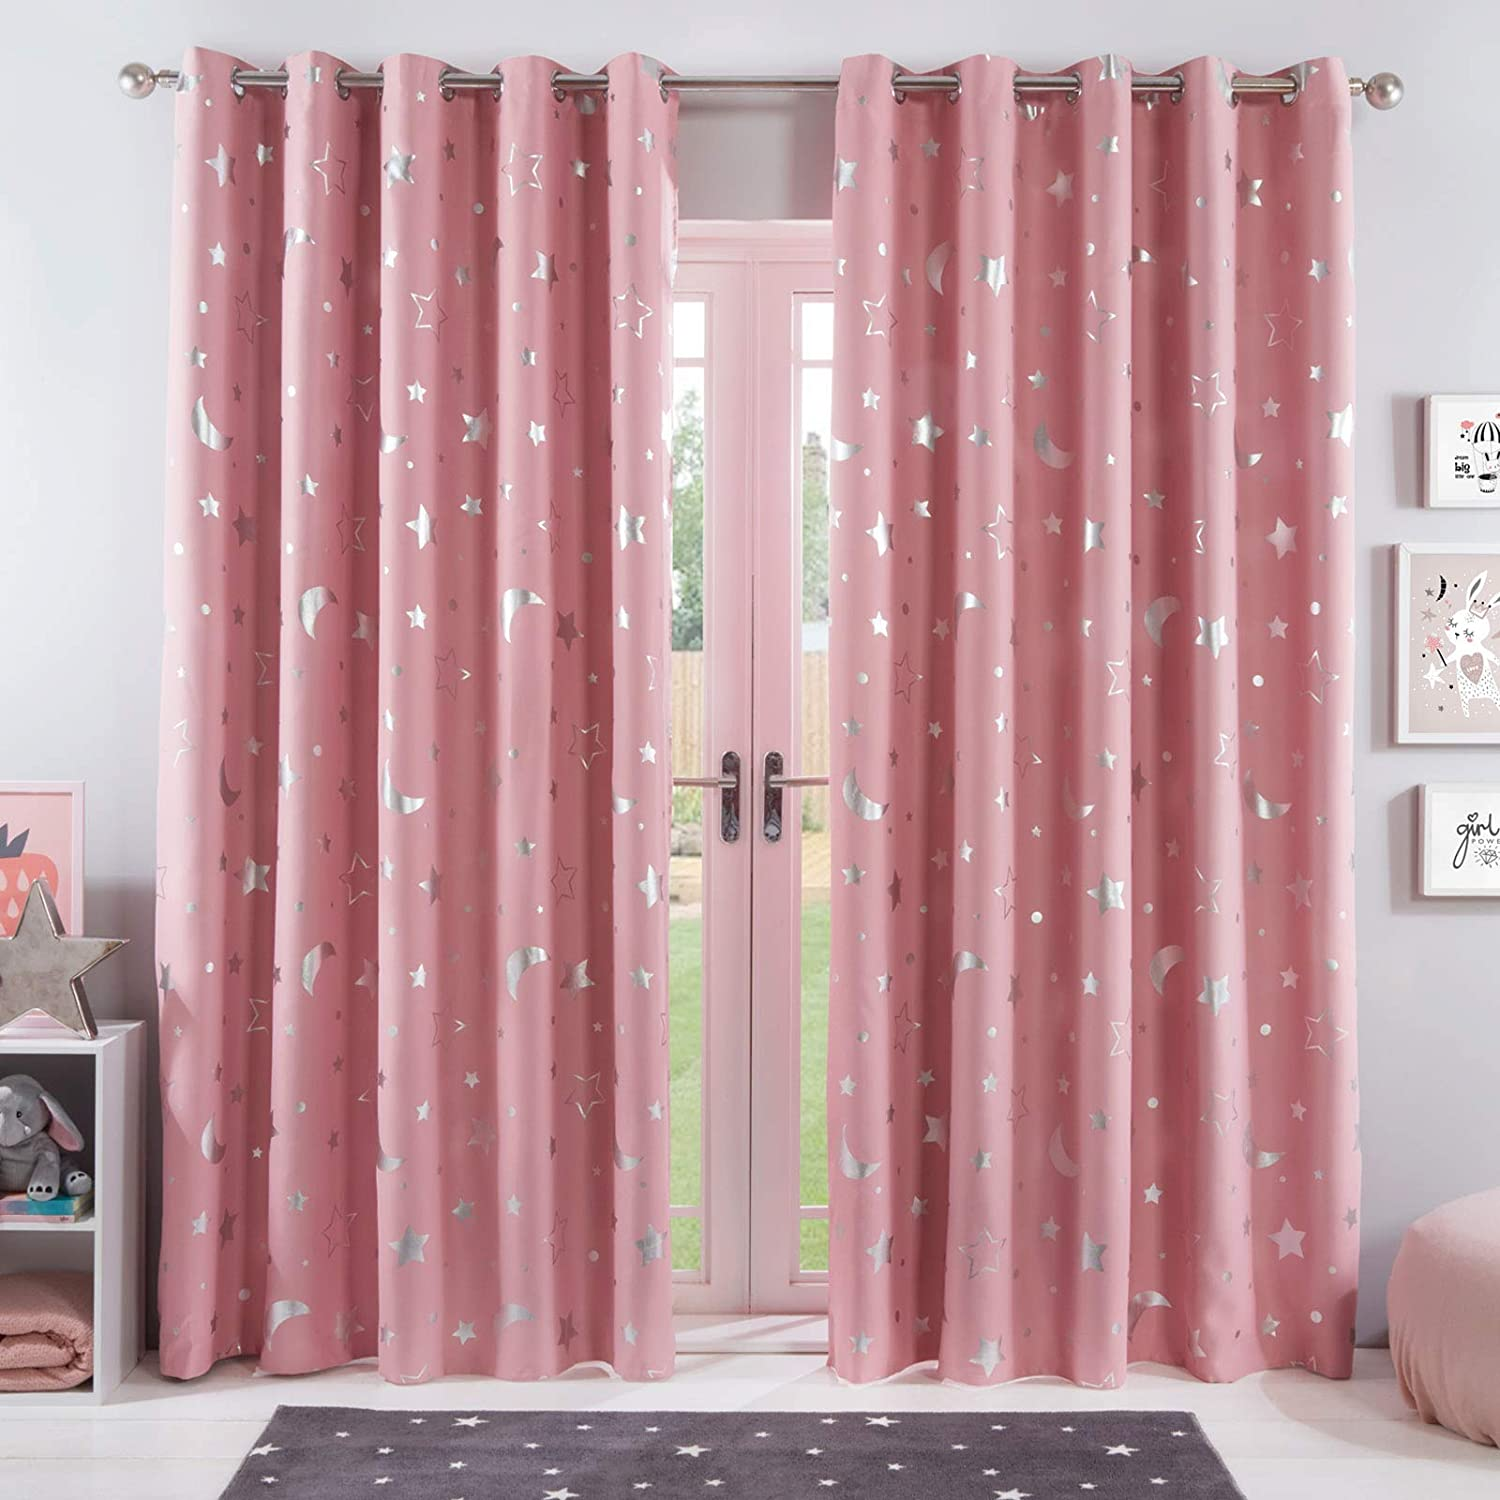 Dreamscene Galaxy Thermal Blackout Curtains Pair Of Eyelet Ring Top Panels Kids Metallic 100 Microfibre Pink Blush Moon Stars 46 Wide X 54 Drop Amazon Co Uk Kitchen Home